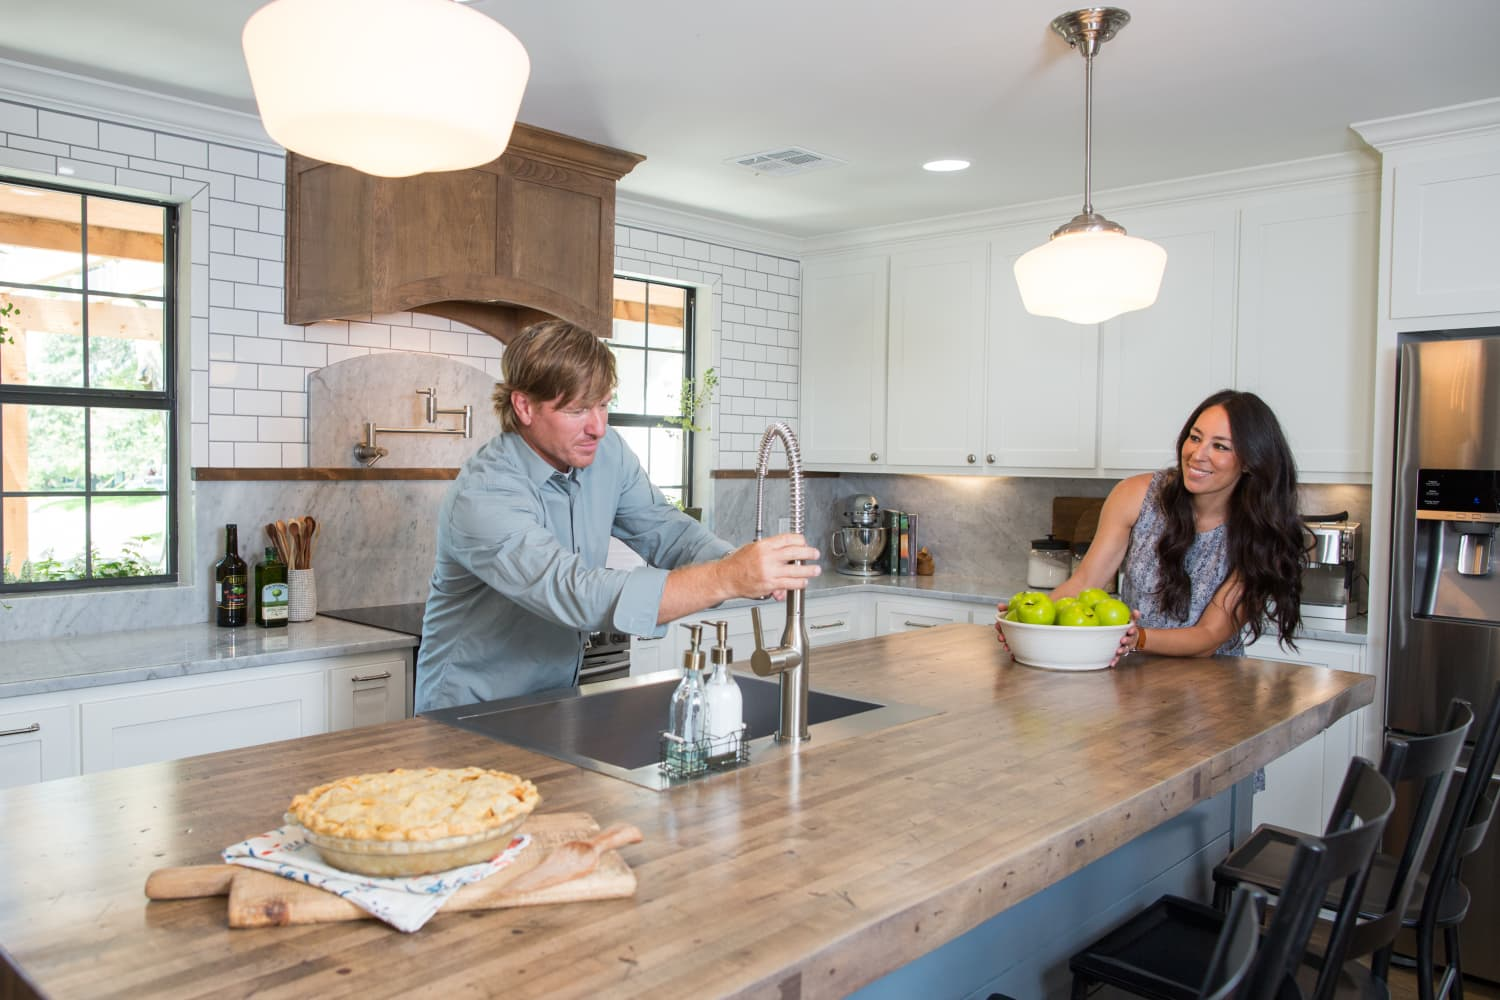 Joanna Gaines Dropped a New Kitchen Collection Just in Time for Holiday Baking